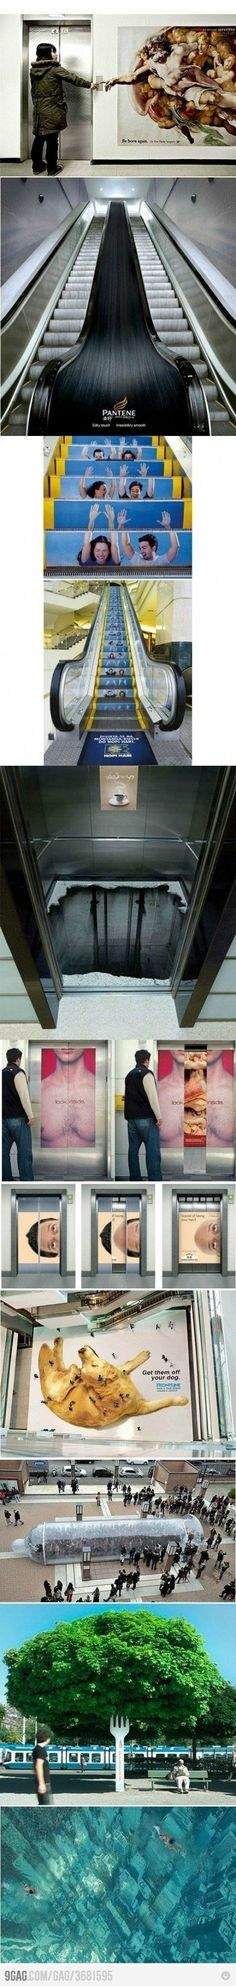 awesome Ambient ads. www.arcreactions.com...